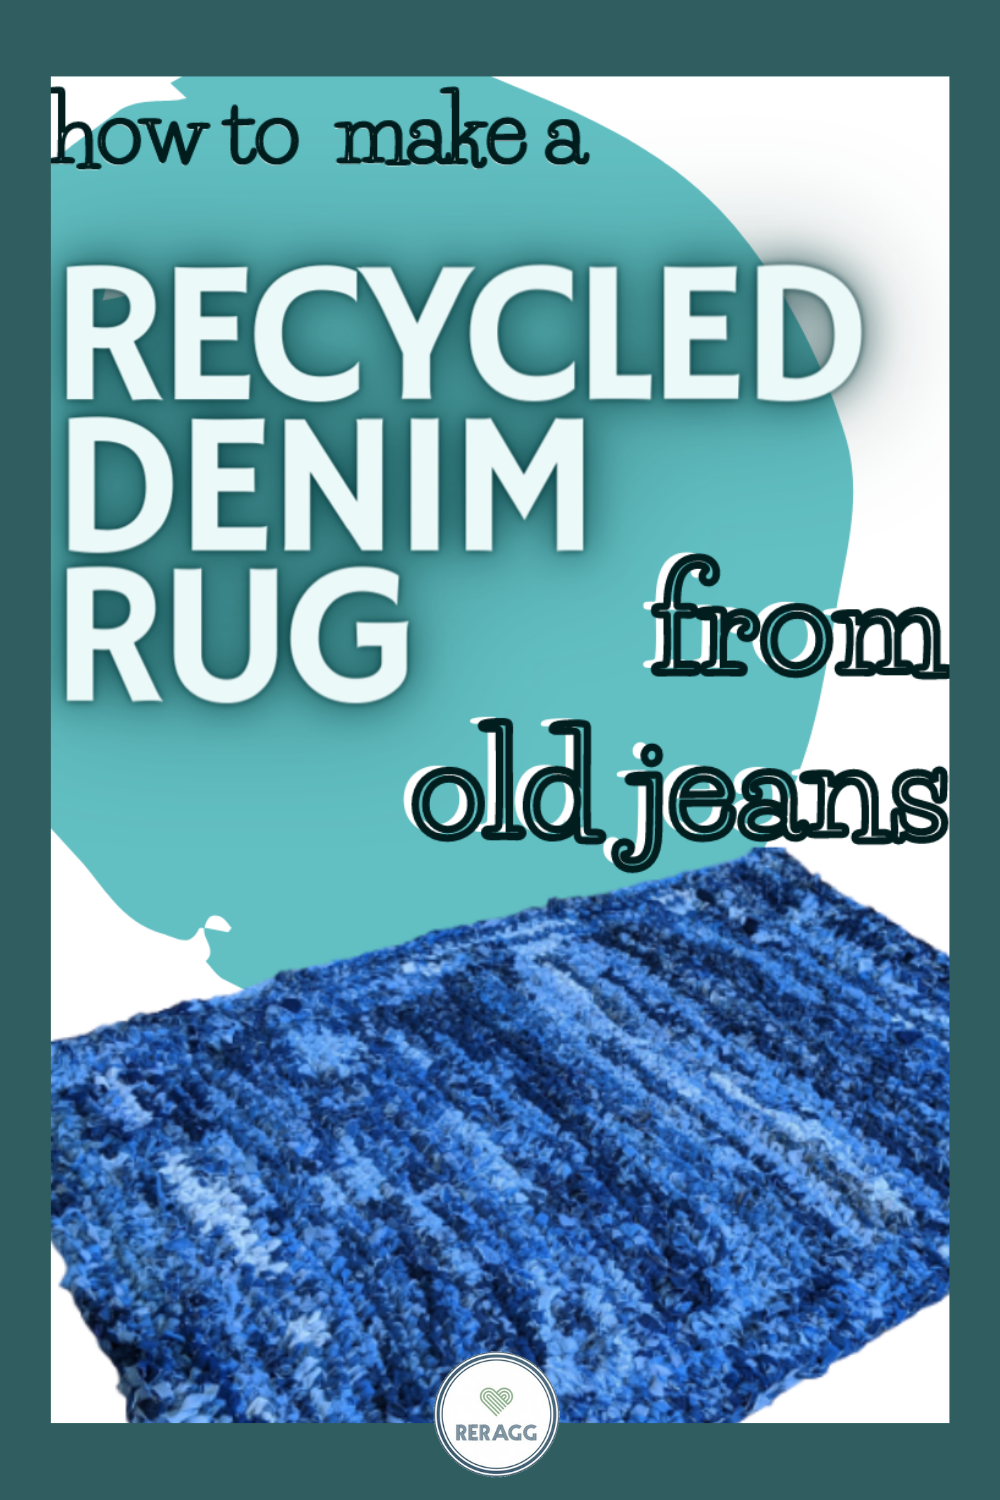 how to make a rug from old jeans